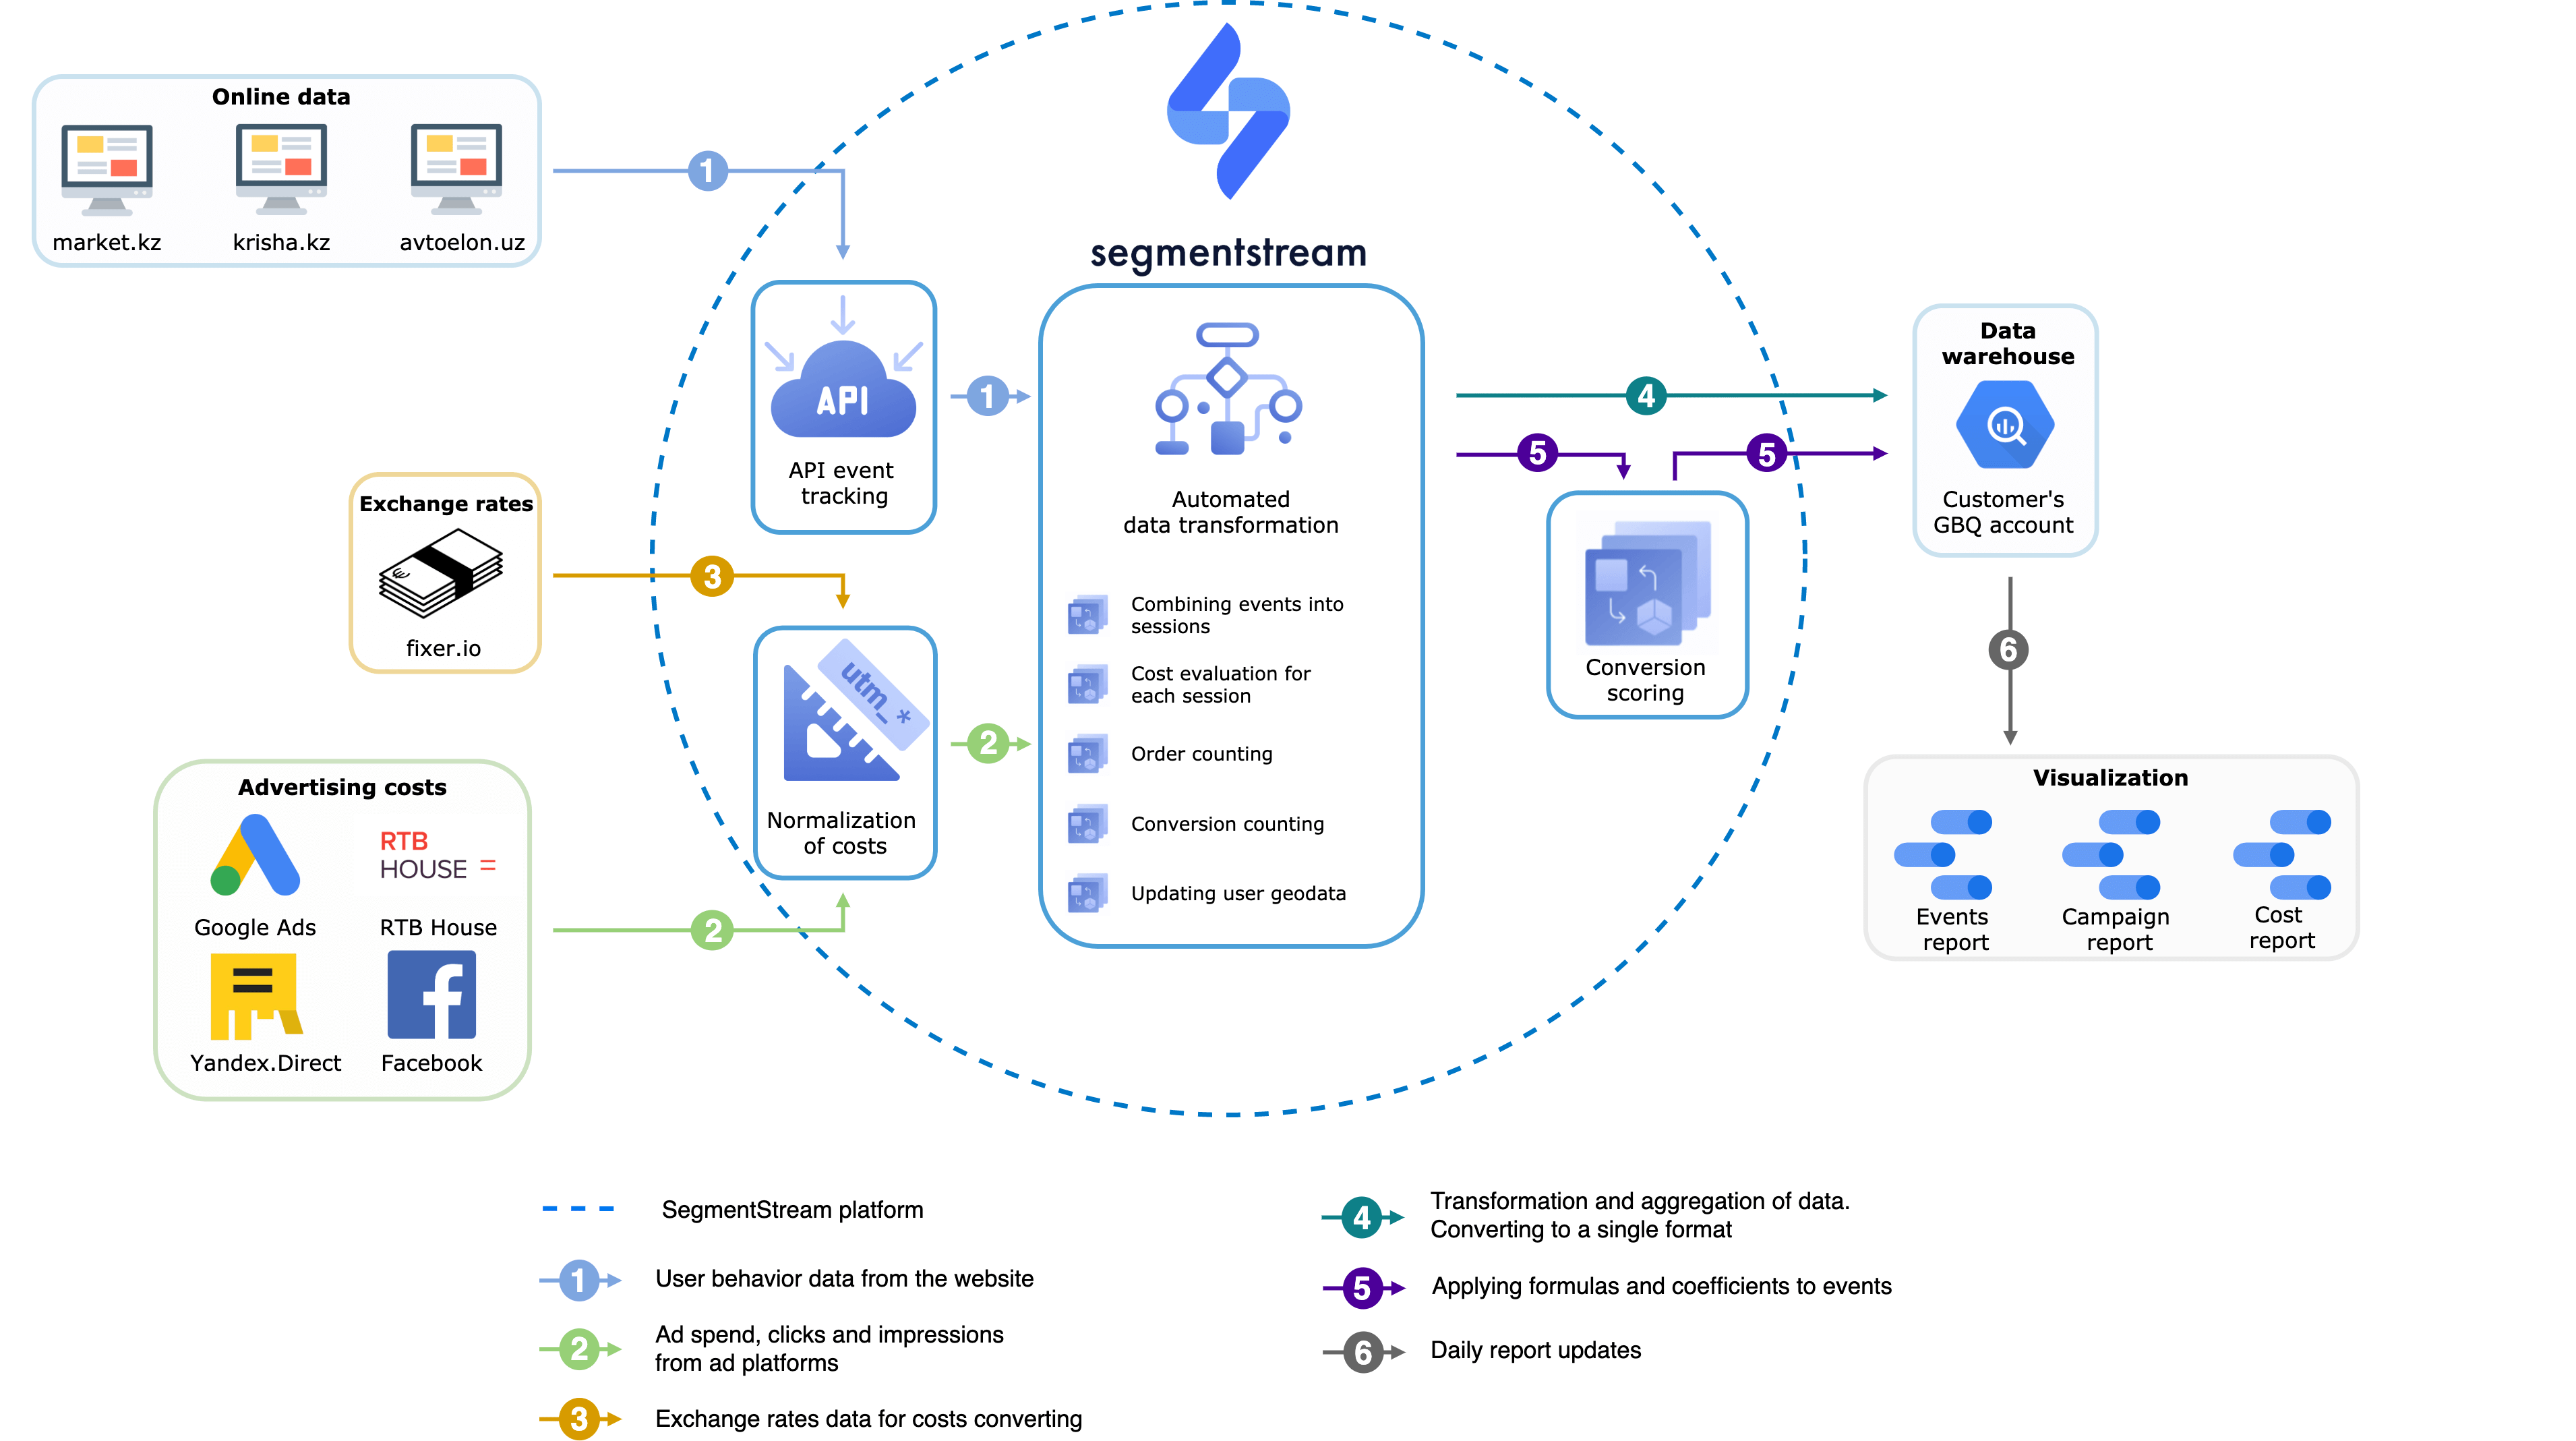 The overall architecture of the solution